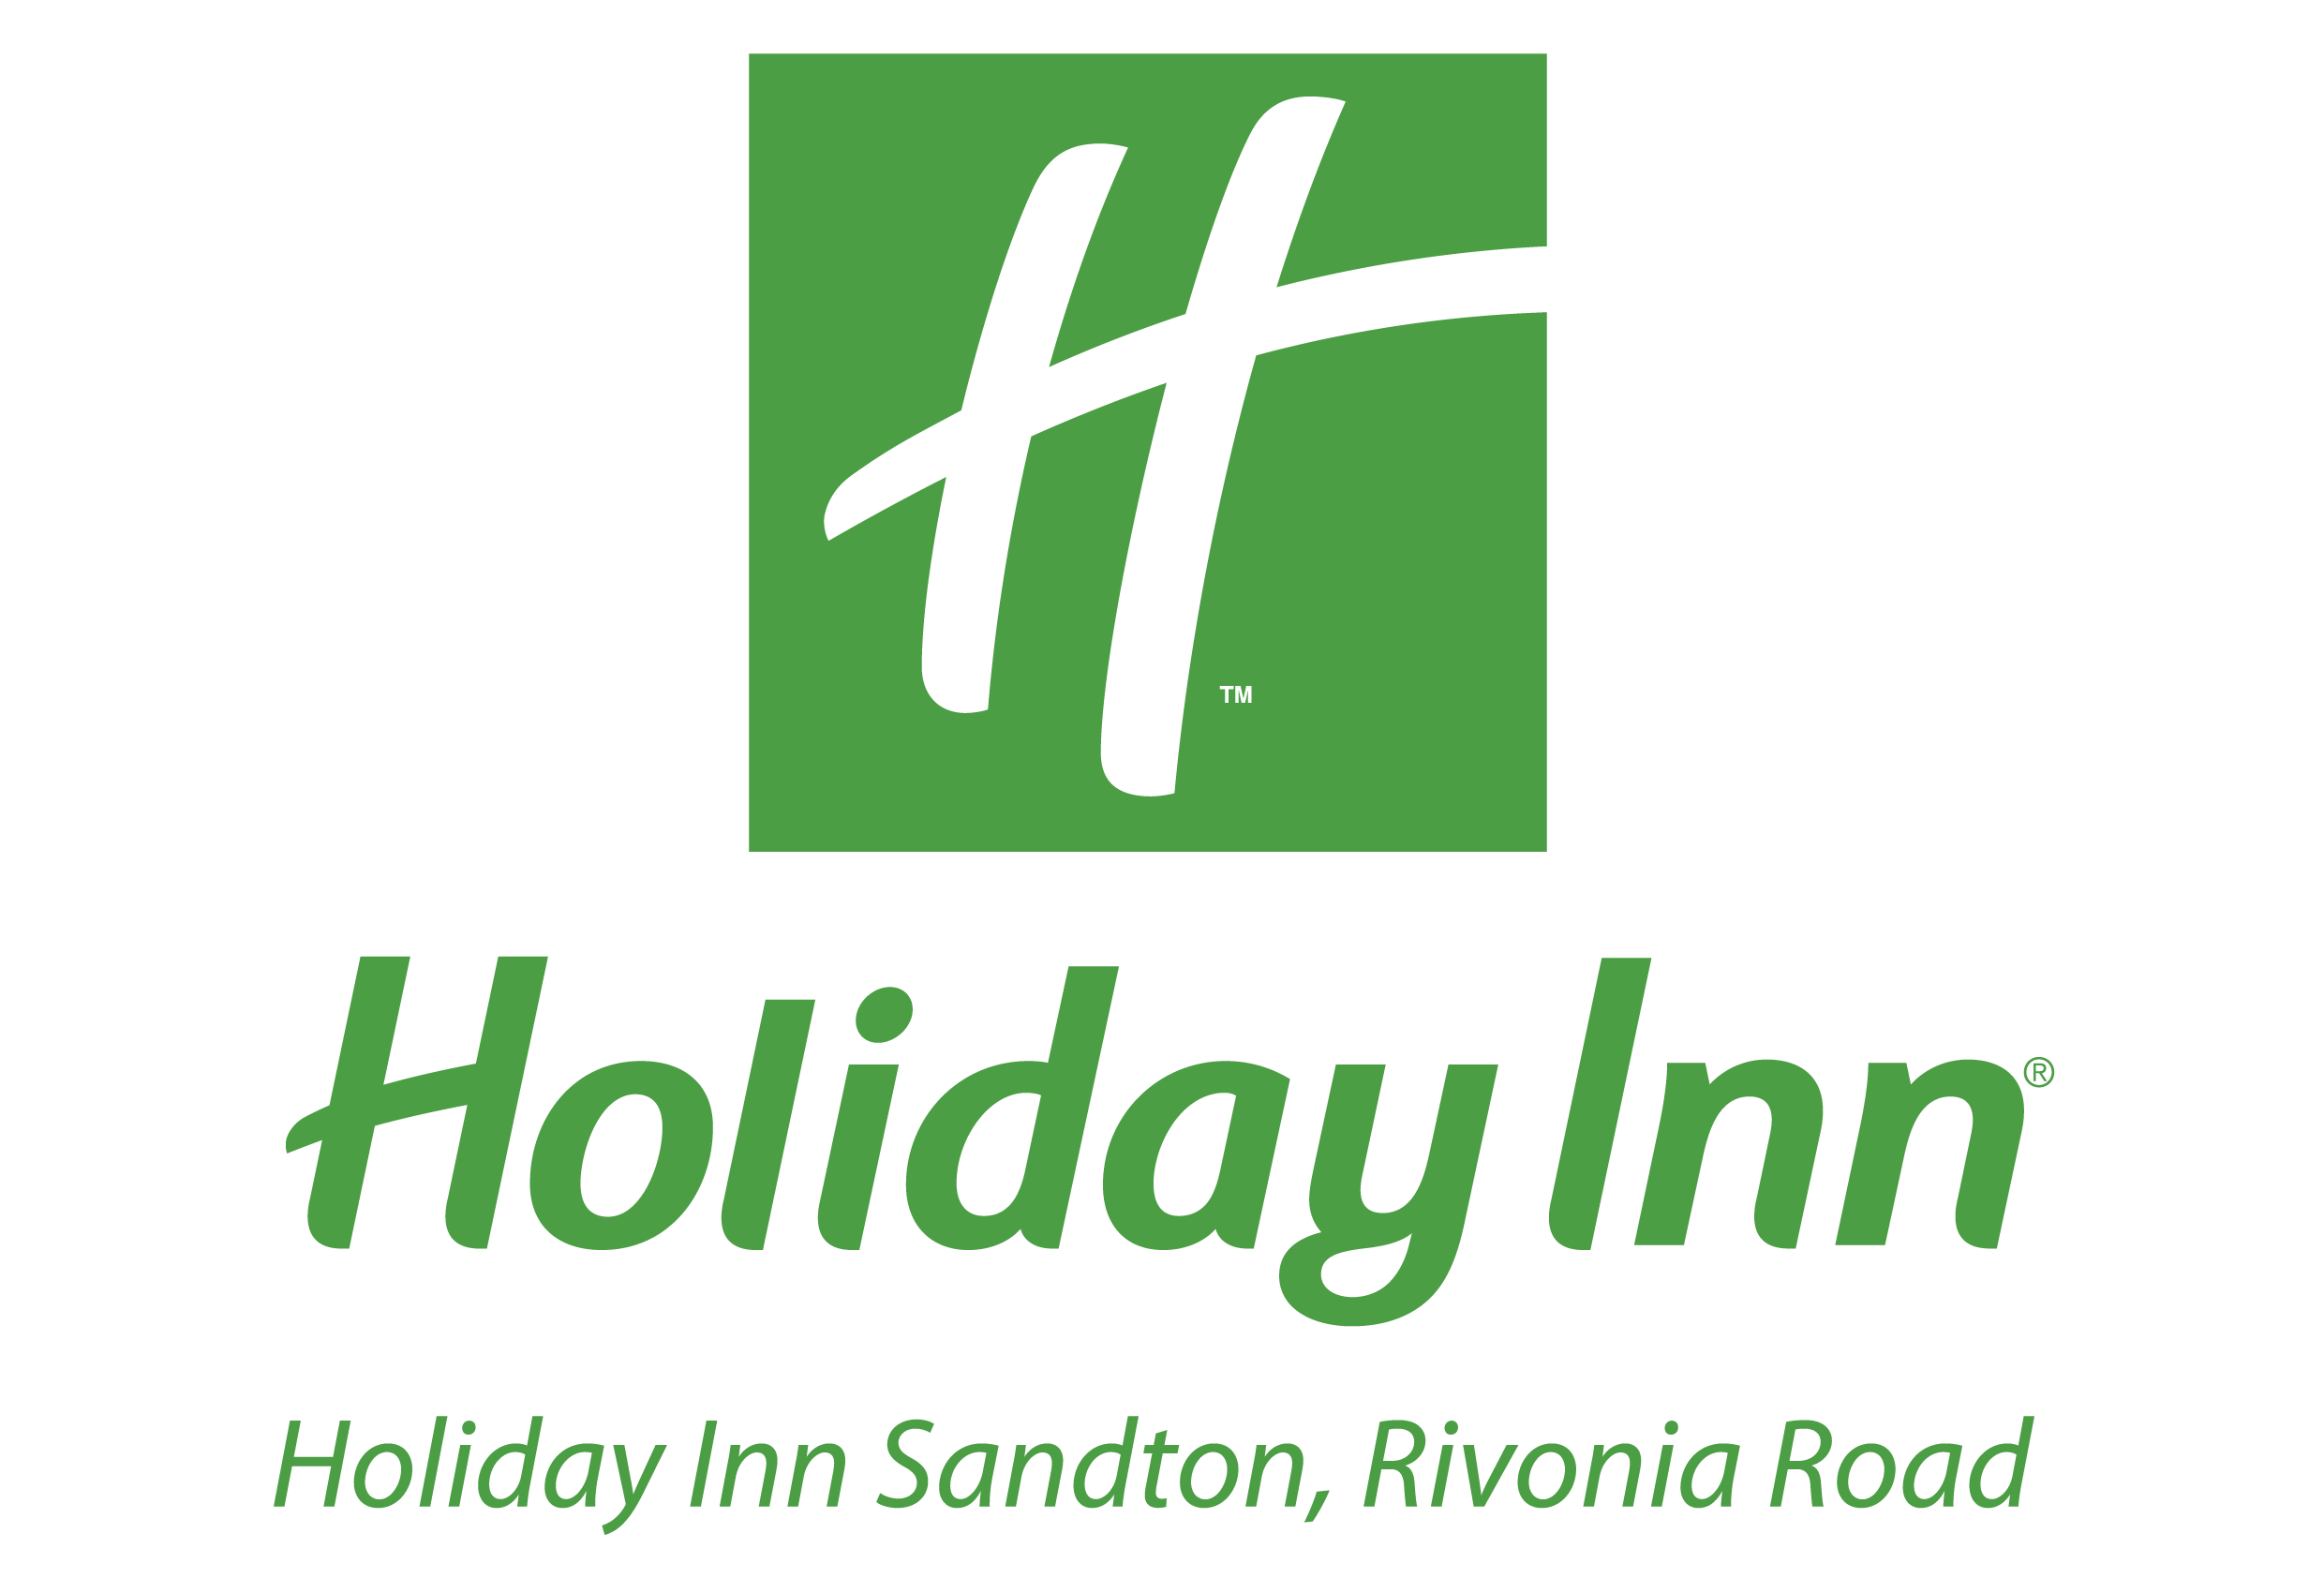 Holiday Inn Sandton – Rivonia Road